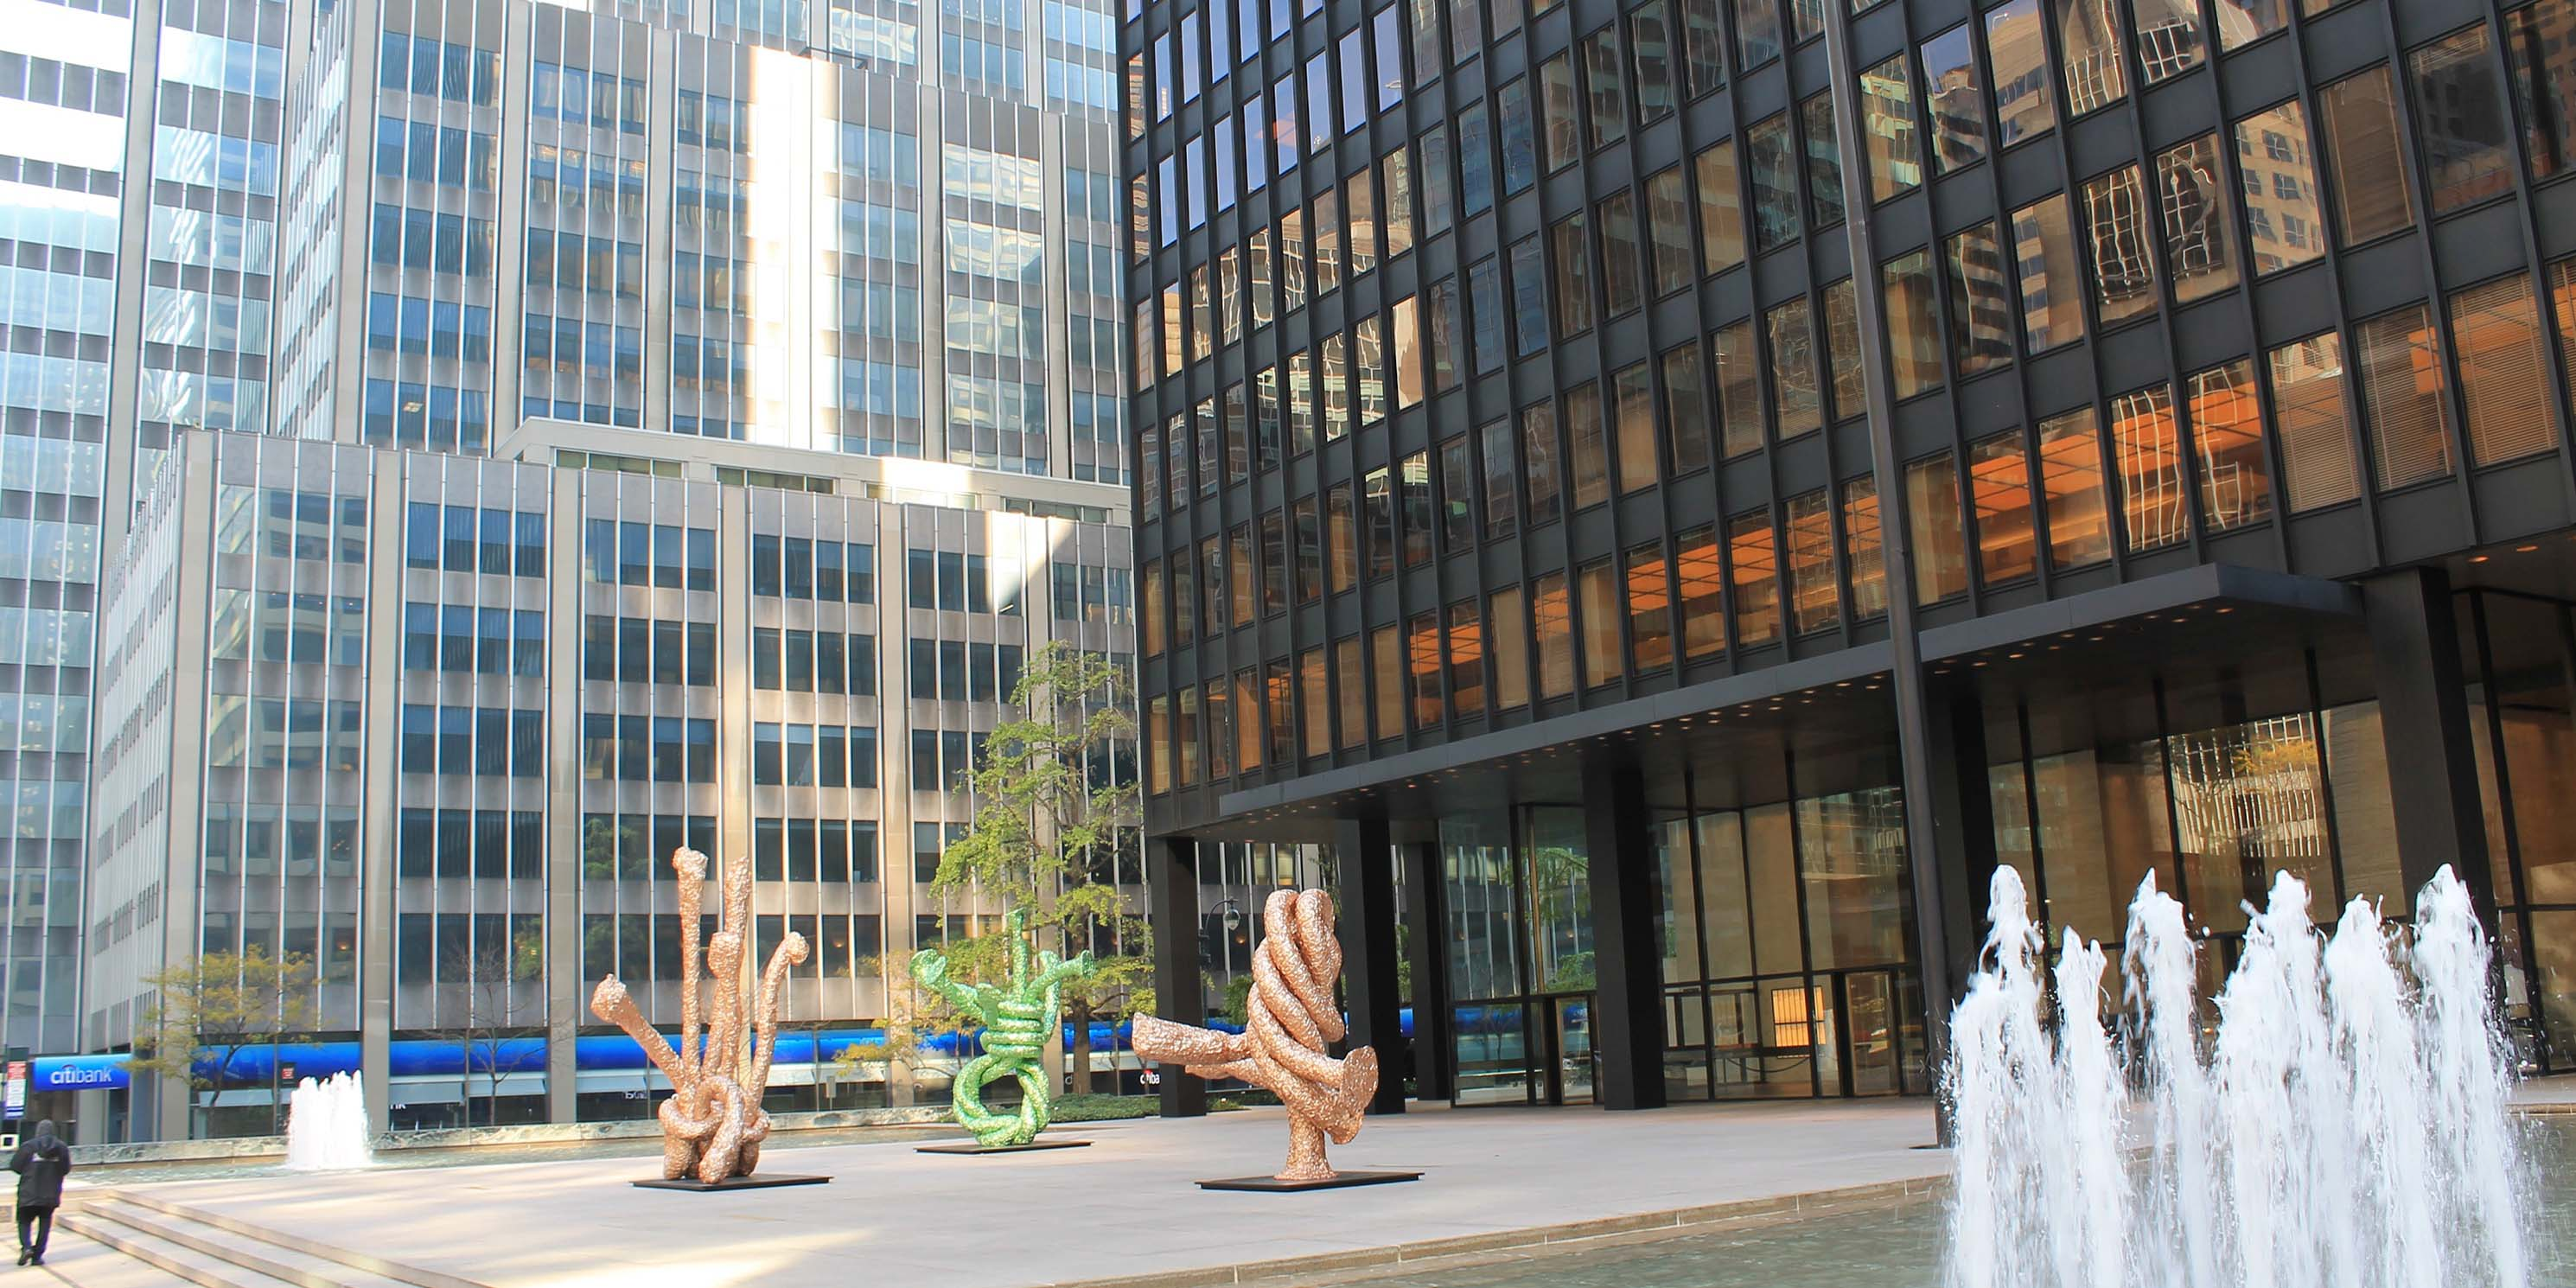 Exterior of the Seagram Building with fountain outside